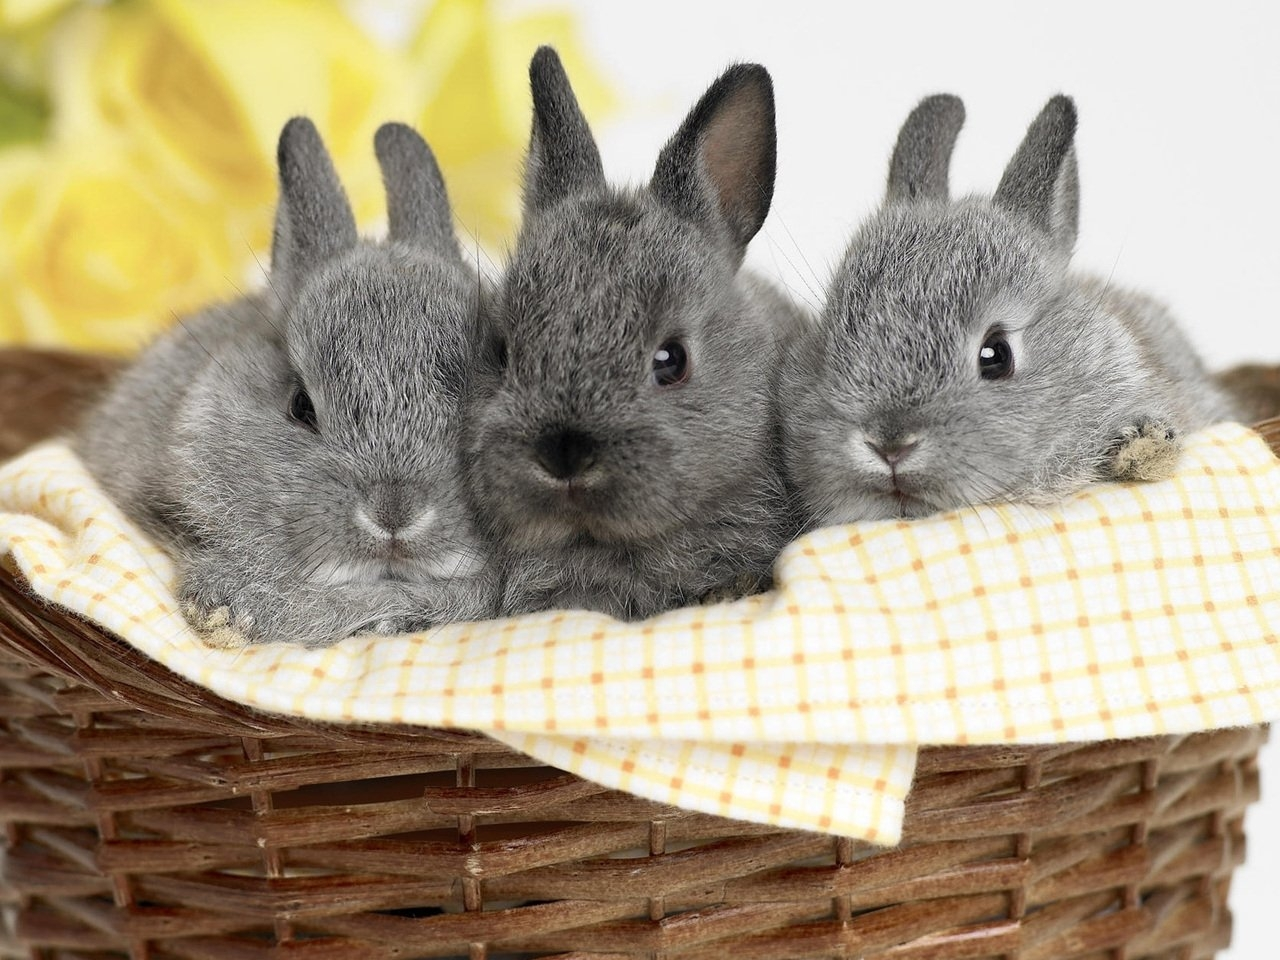 36314 download wallpaper Animals, Rabbits screensavers and pictures for free